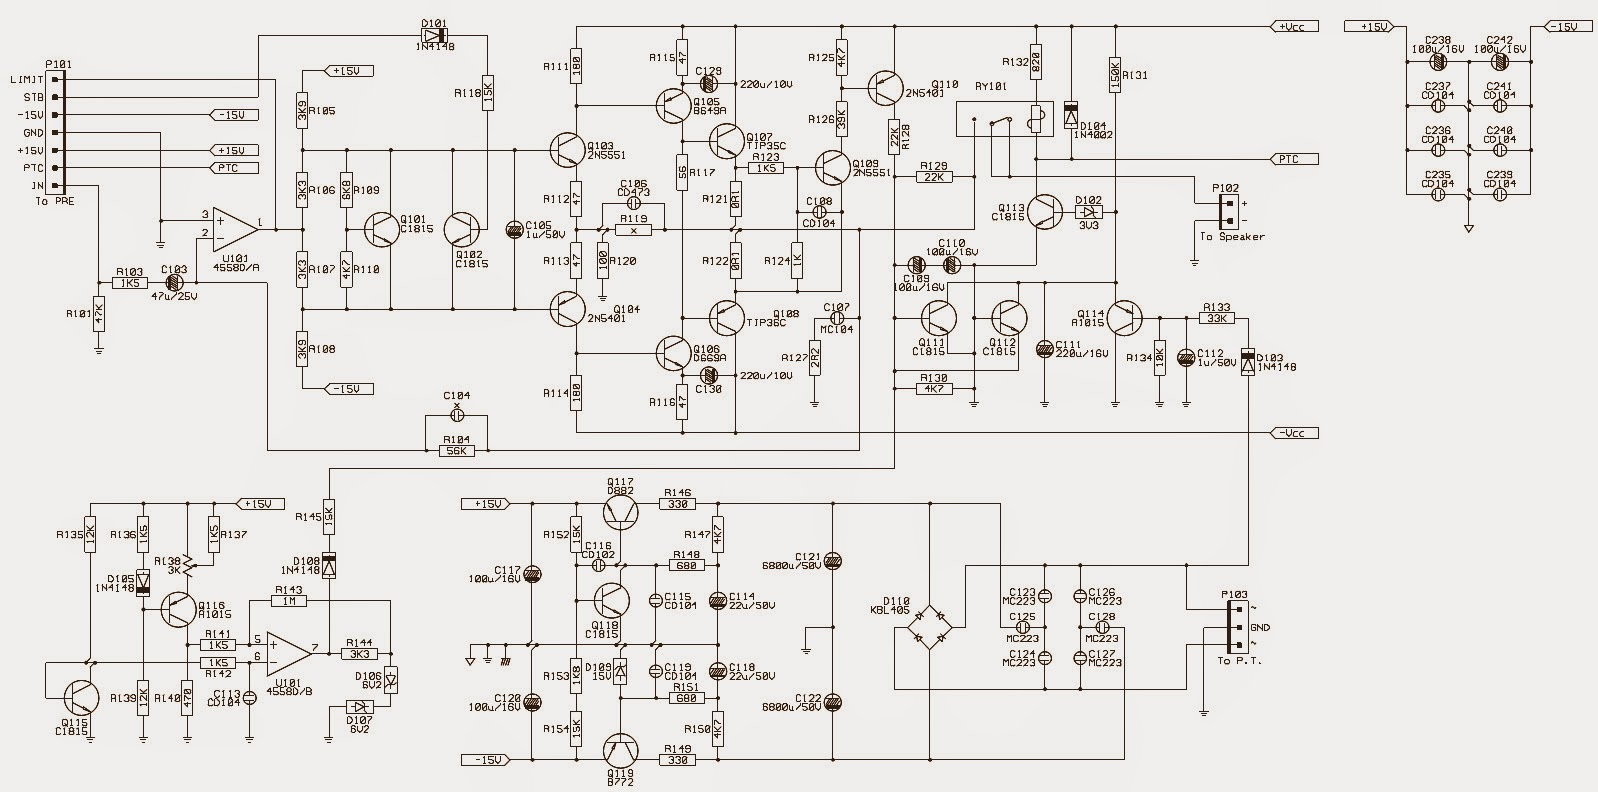 Balboa Control Board | Wiring Diagram Database on balboa titan spa plumbing diagram, balboa circuit board wiring diagram, balboa spa circuit board repair, balboa schematics 54003, balboa pump 2 speed, balboa m2 schematic board, balboa spa controls manual, balboa spa board wiring diagram, balboa relay schematic, balboa pressure switch location,